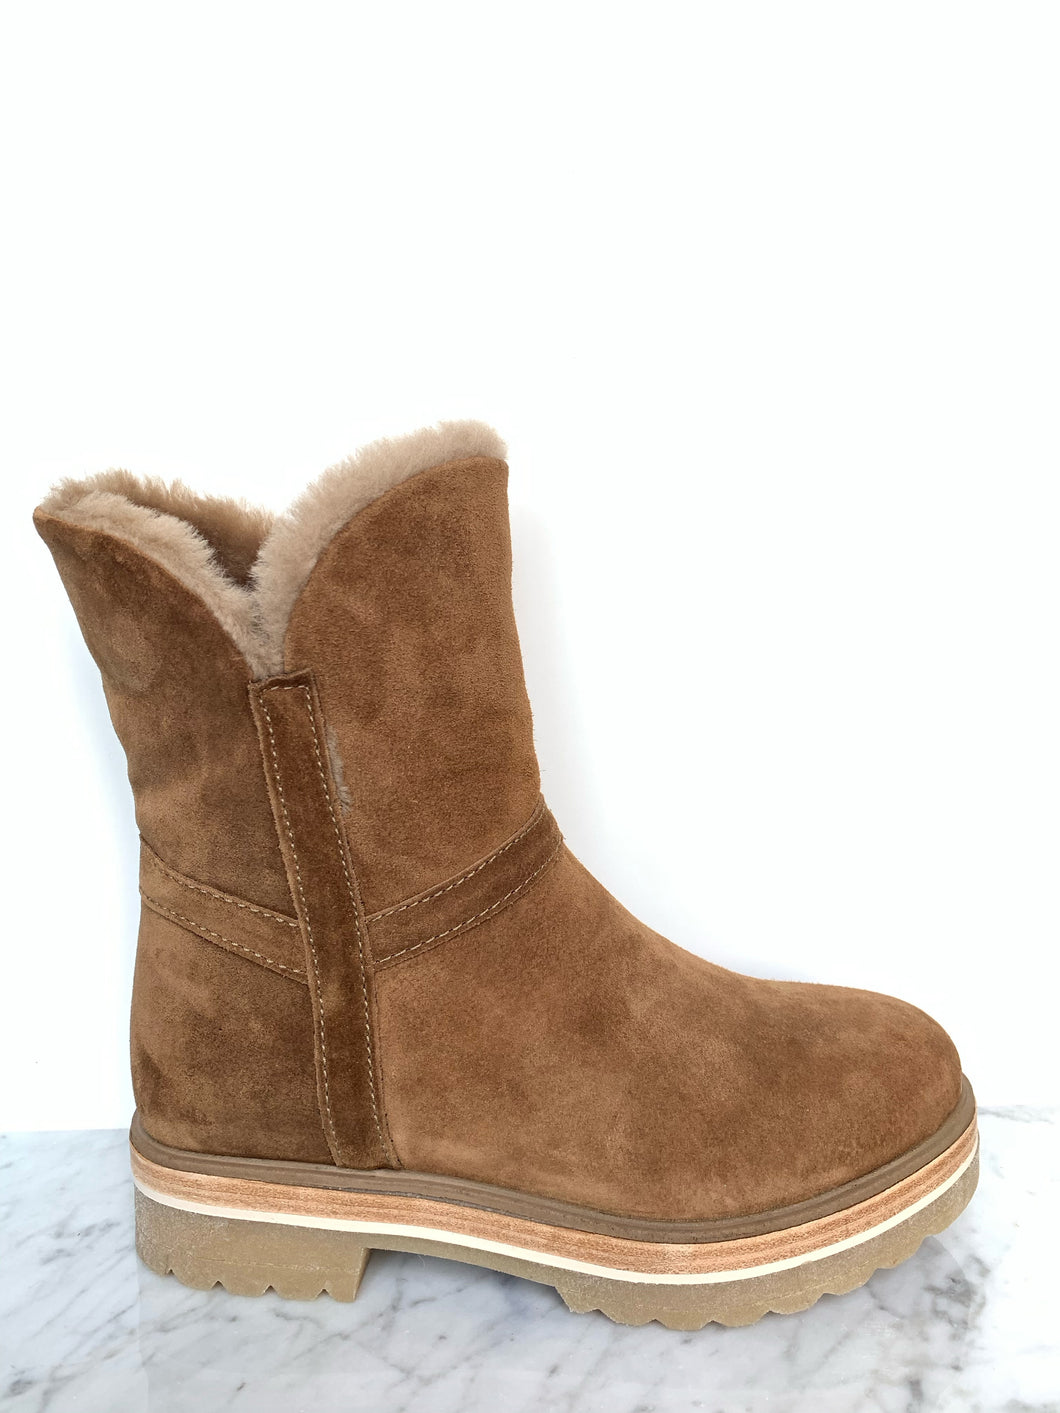 Tan nubuck leather biker style boot with fur lining and chunky sole. By Alpe